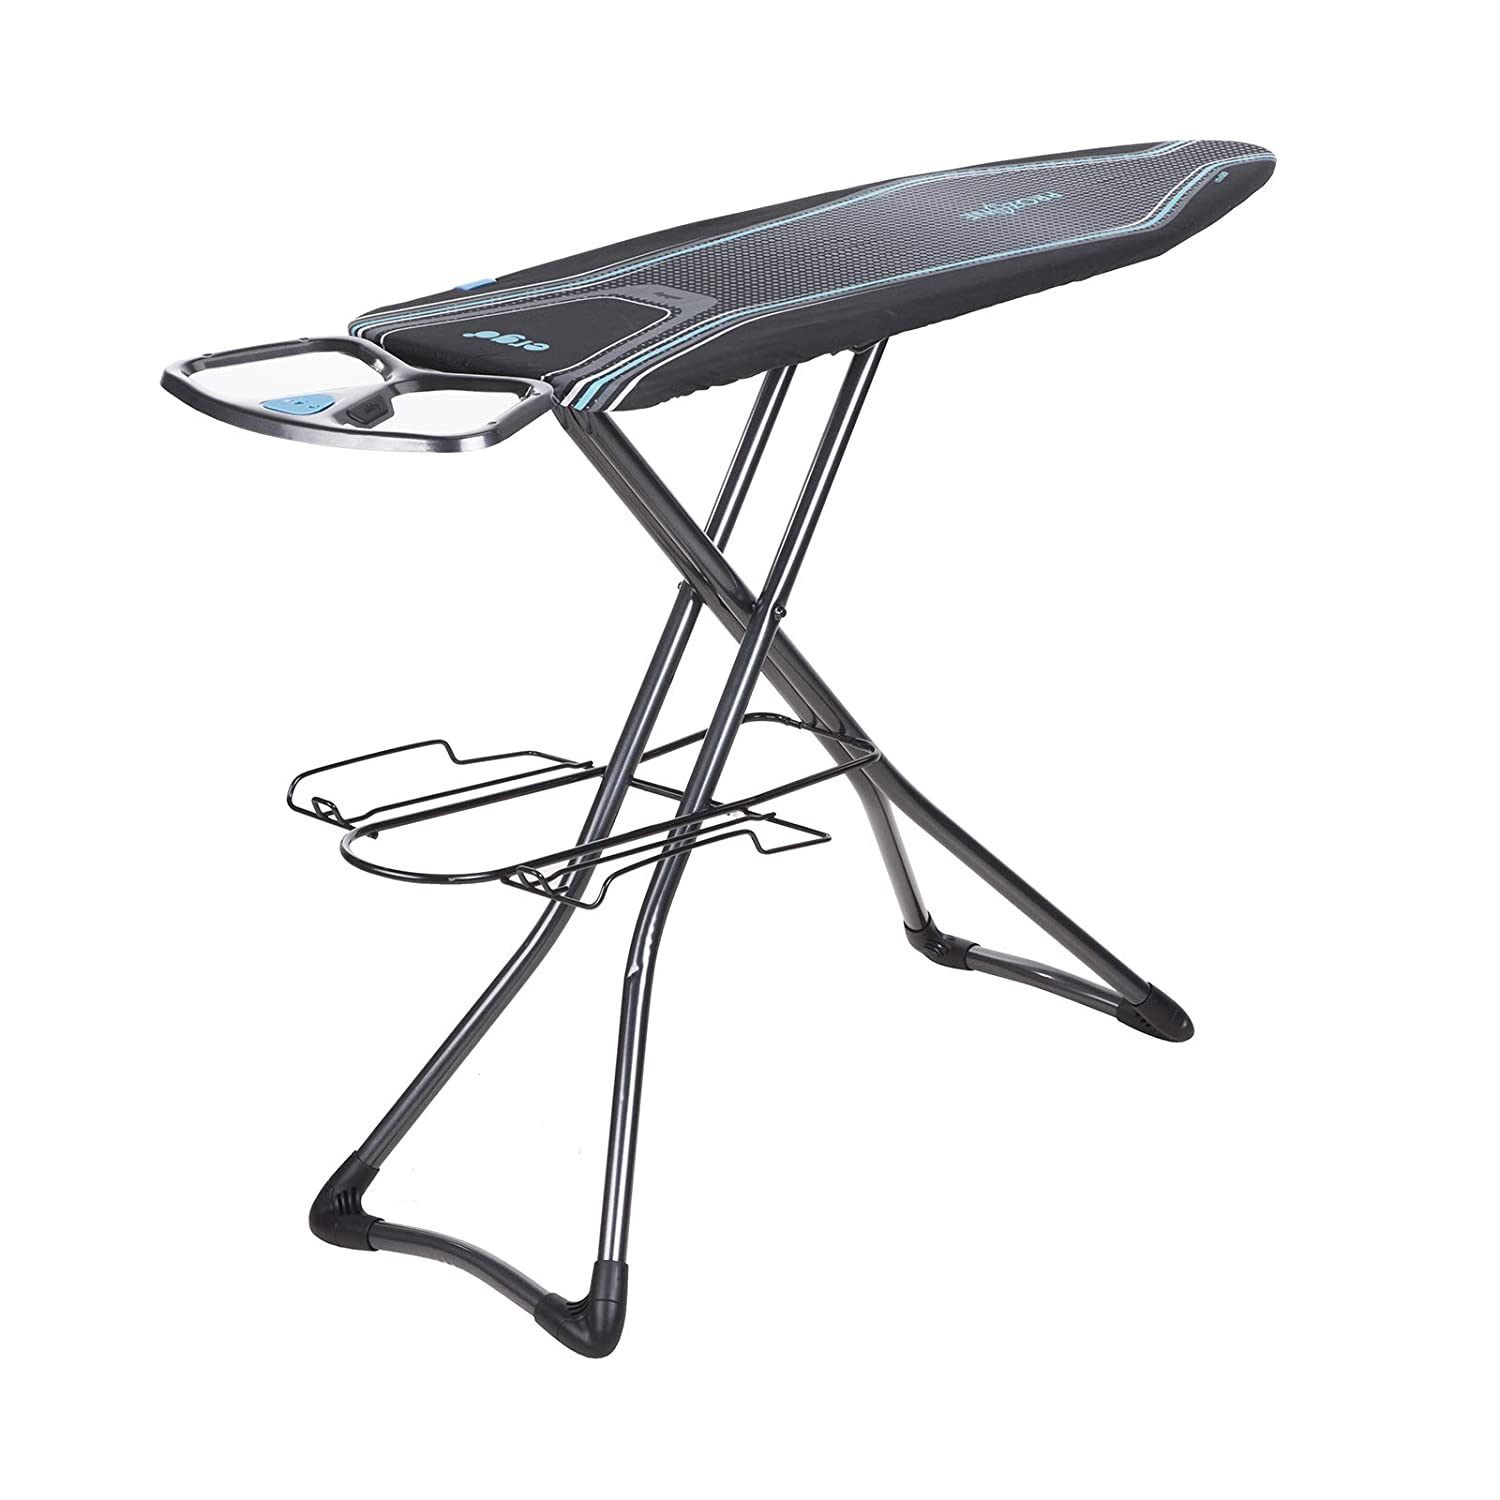 Ironing Board Minky Ergo Plus